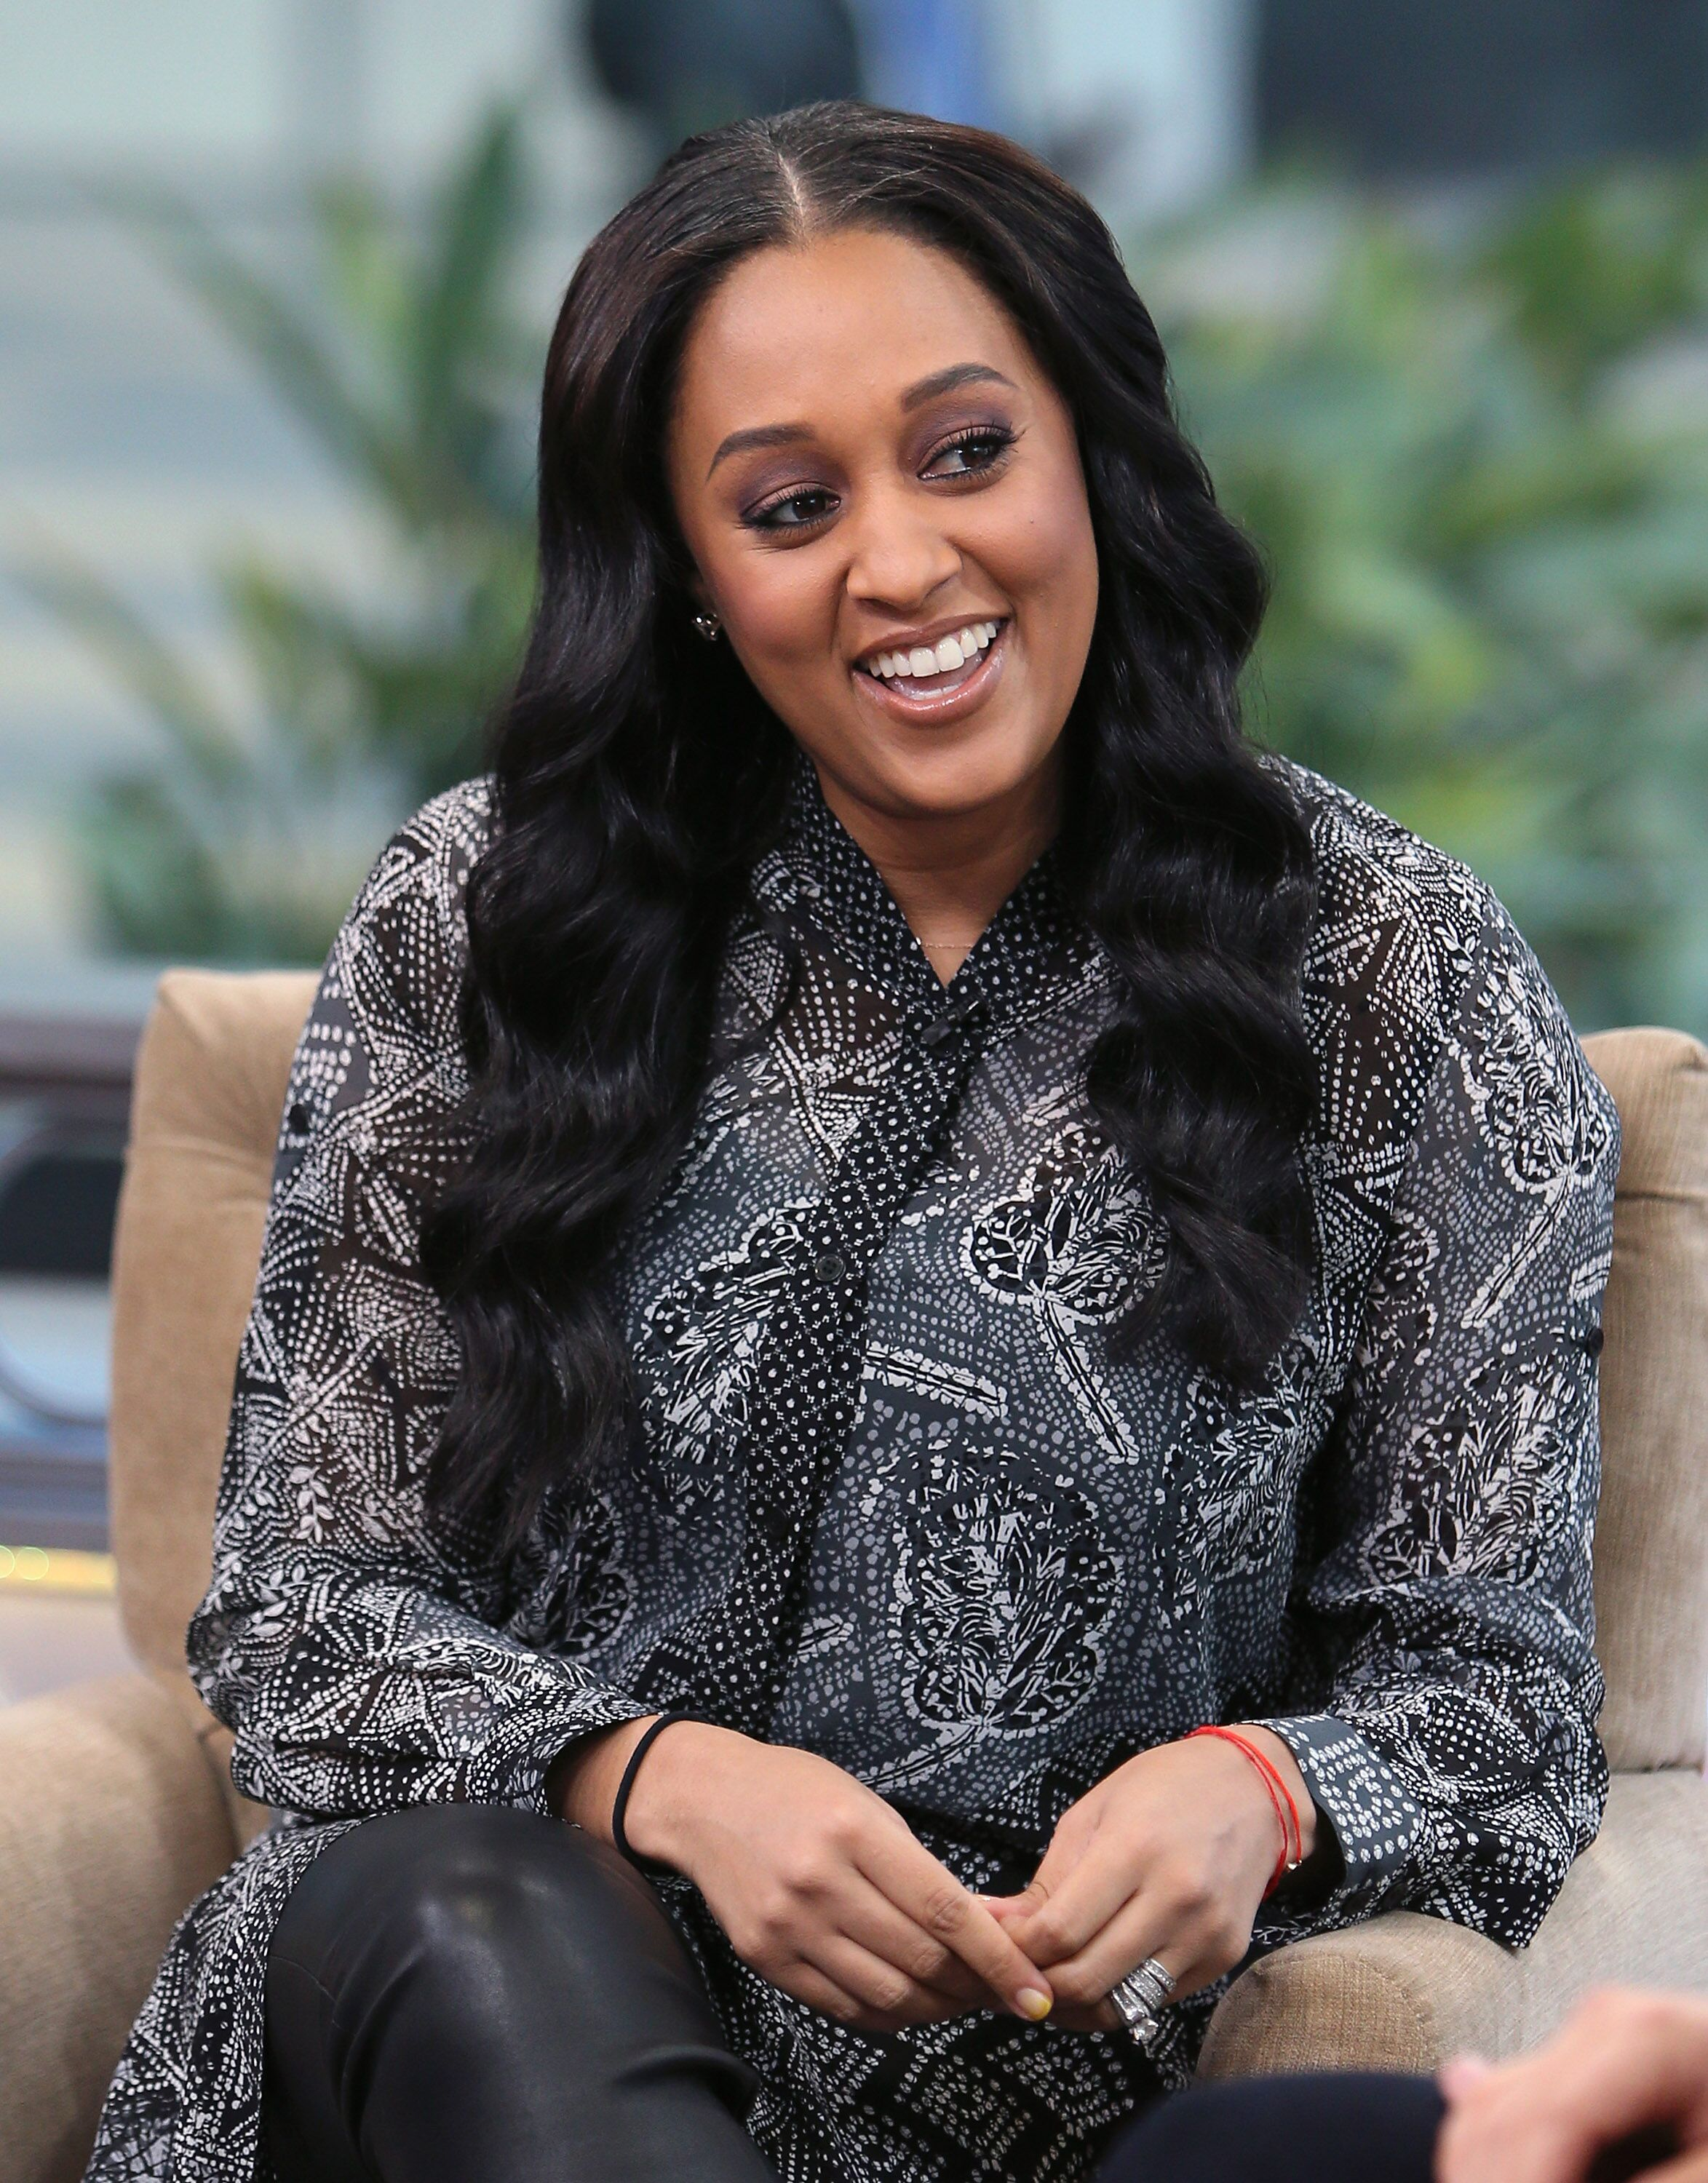 Actress Tia Mowry-Hardrict attends Hollywood Today Live at W Hollywood on January 3, 2017 | Photo: Getty Images